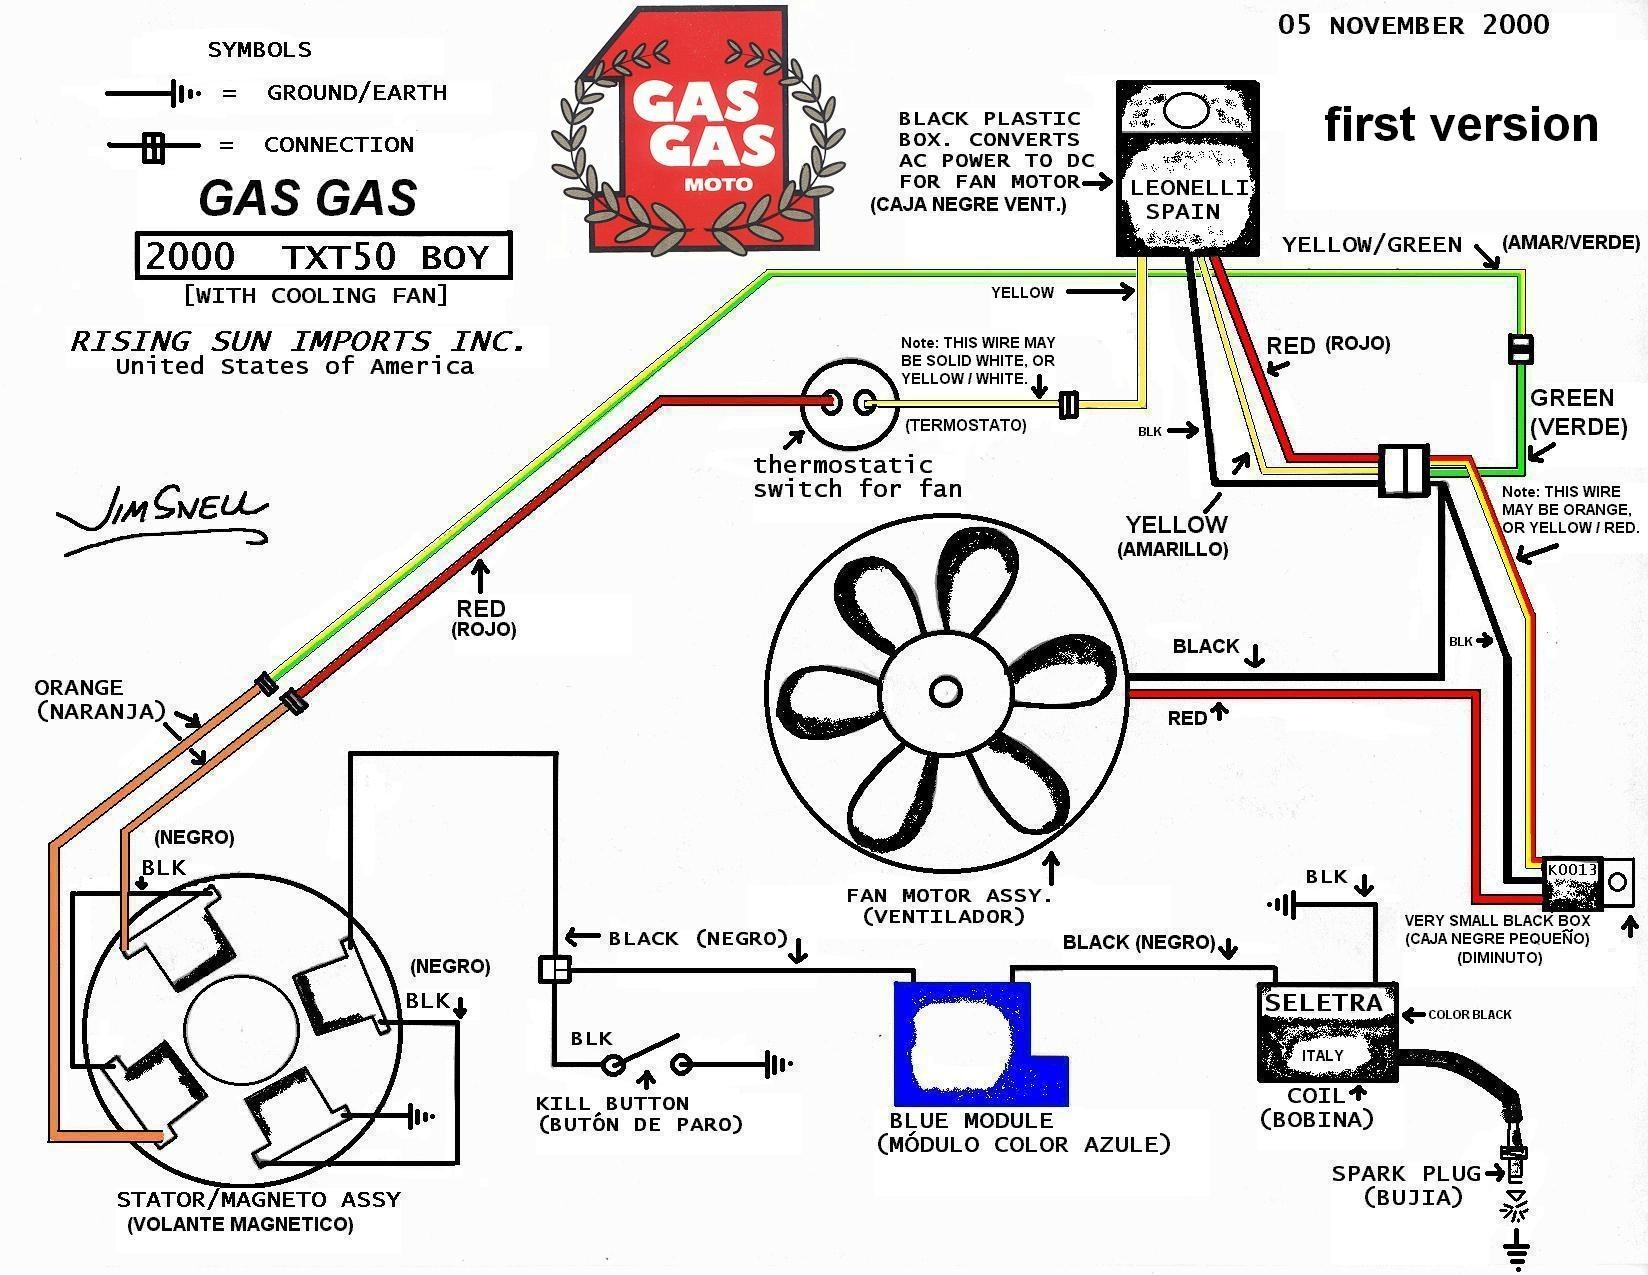 B4E306 Kz550 Wiring Diagram | Wiring Resources on kz650 wiring diagram, z400 wiring diagram, klr650 wiring diagram, ninja 250r wiring diagram, z1000 wiring diagram, fj1100 wiring diagram, kz1000 wiring diagram, kz440 wiring diagram, zx7r wiring diagram, gs 750 wiring diagram, kz750 wiring diagram, kz400 wiring diagram, xs650 wiring diagram, honda wiring diagram, zl1000 wiring diagram, ex500 wiring diagram, ex250 wiring diagram, vulcan 1500 wiring diagram, kz200 wiring diagram, ke175 wiring diagram,